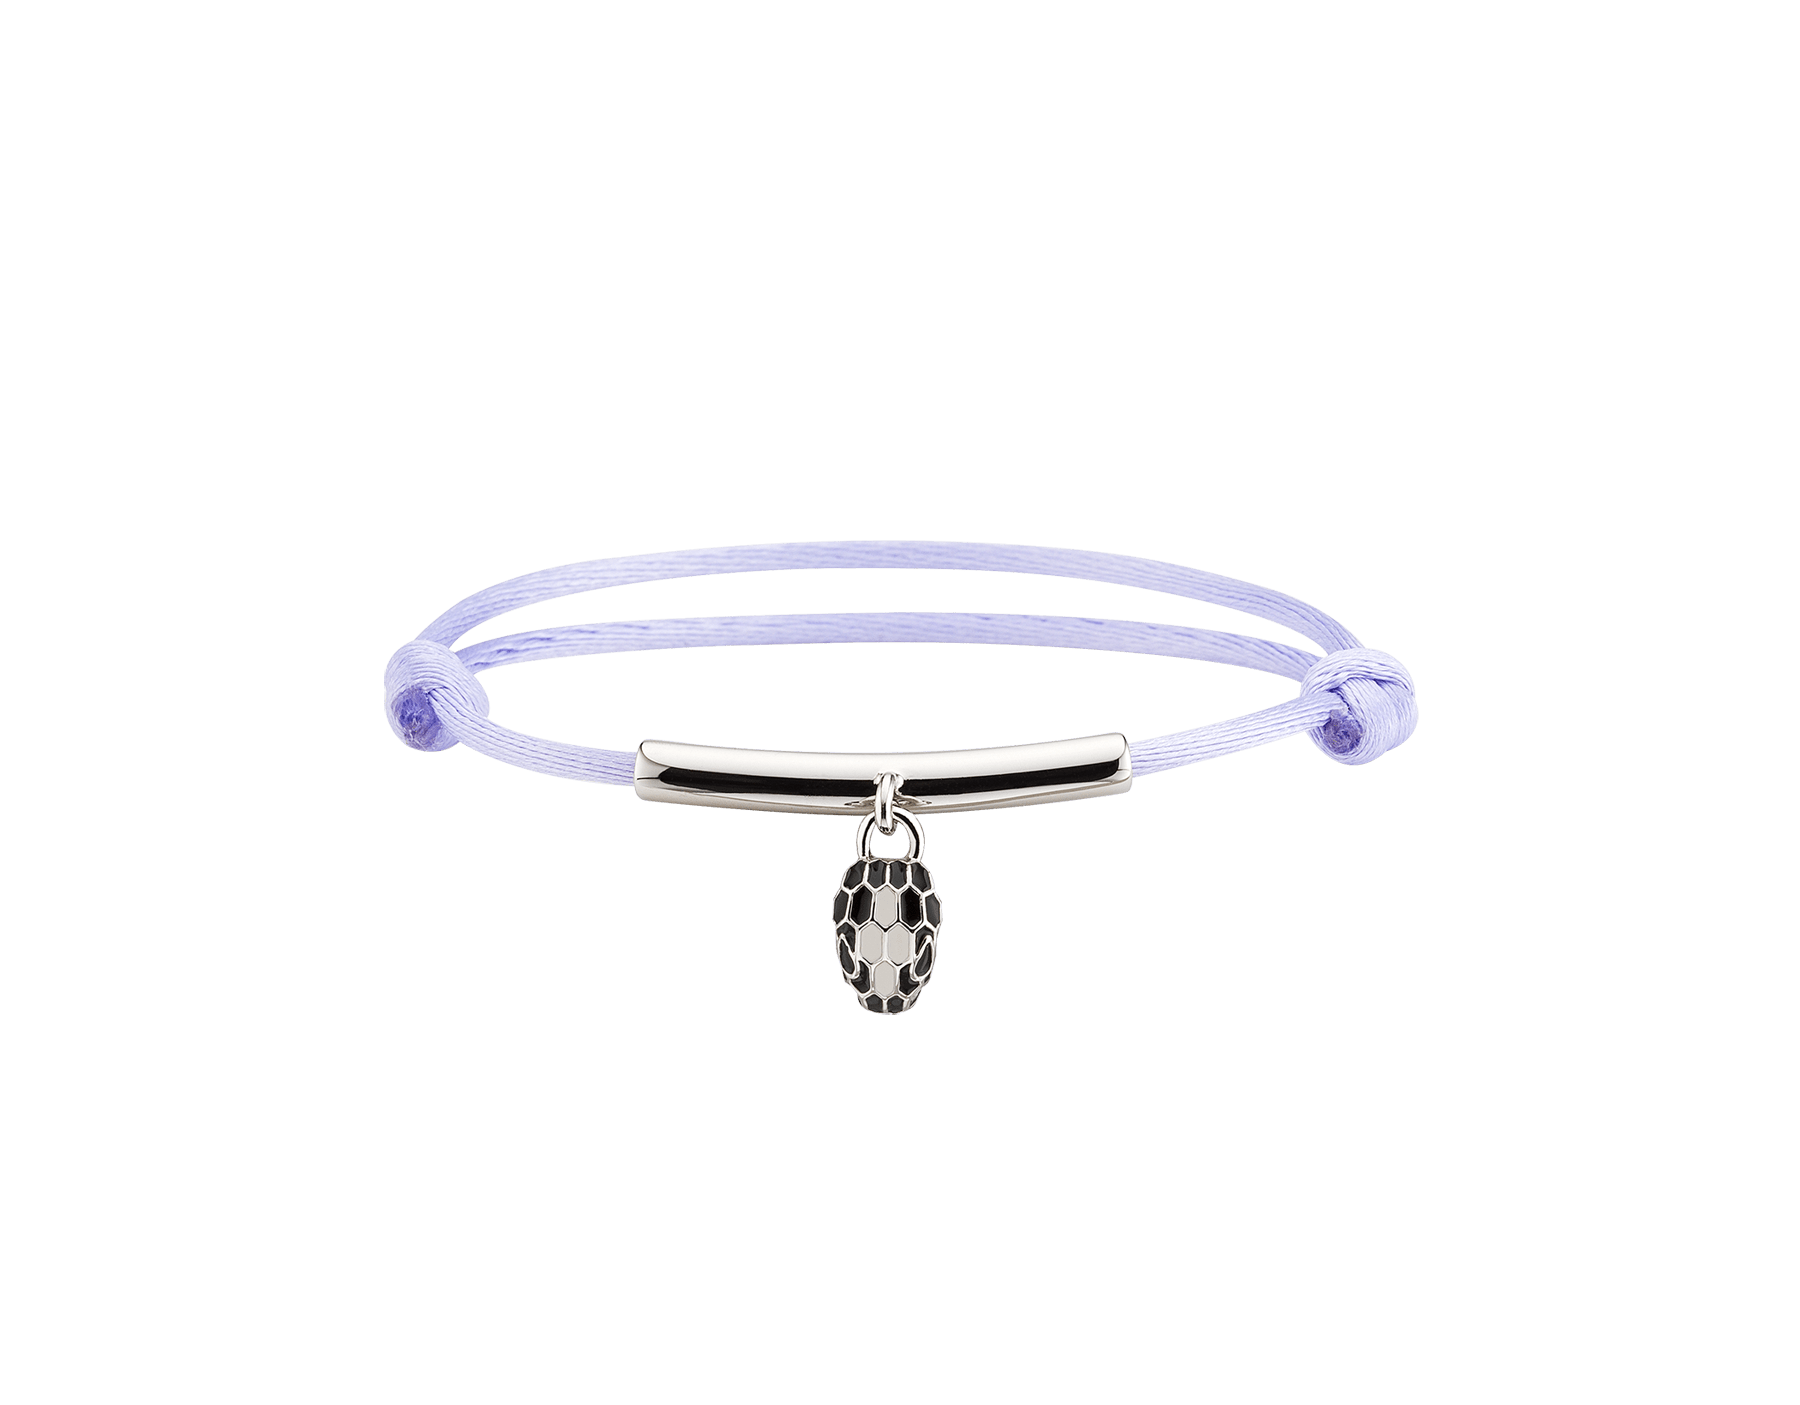 """""""Serpenti Forever"""" bracelet in daisy topaz silk with a palladium plated brass plate and an iconic snakehead charm in black and white agate enamel and black enamel eyes. SERP-MINISTRINGb image 1"""